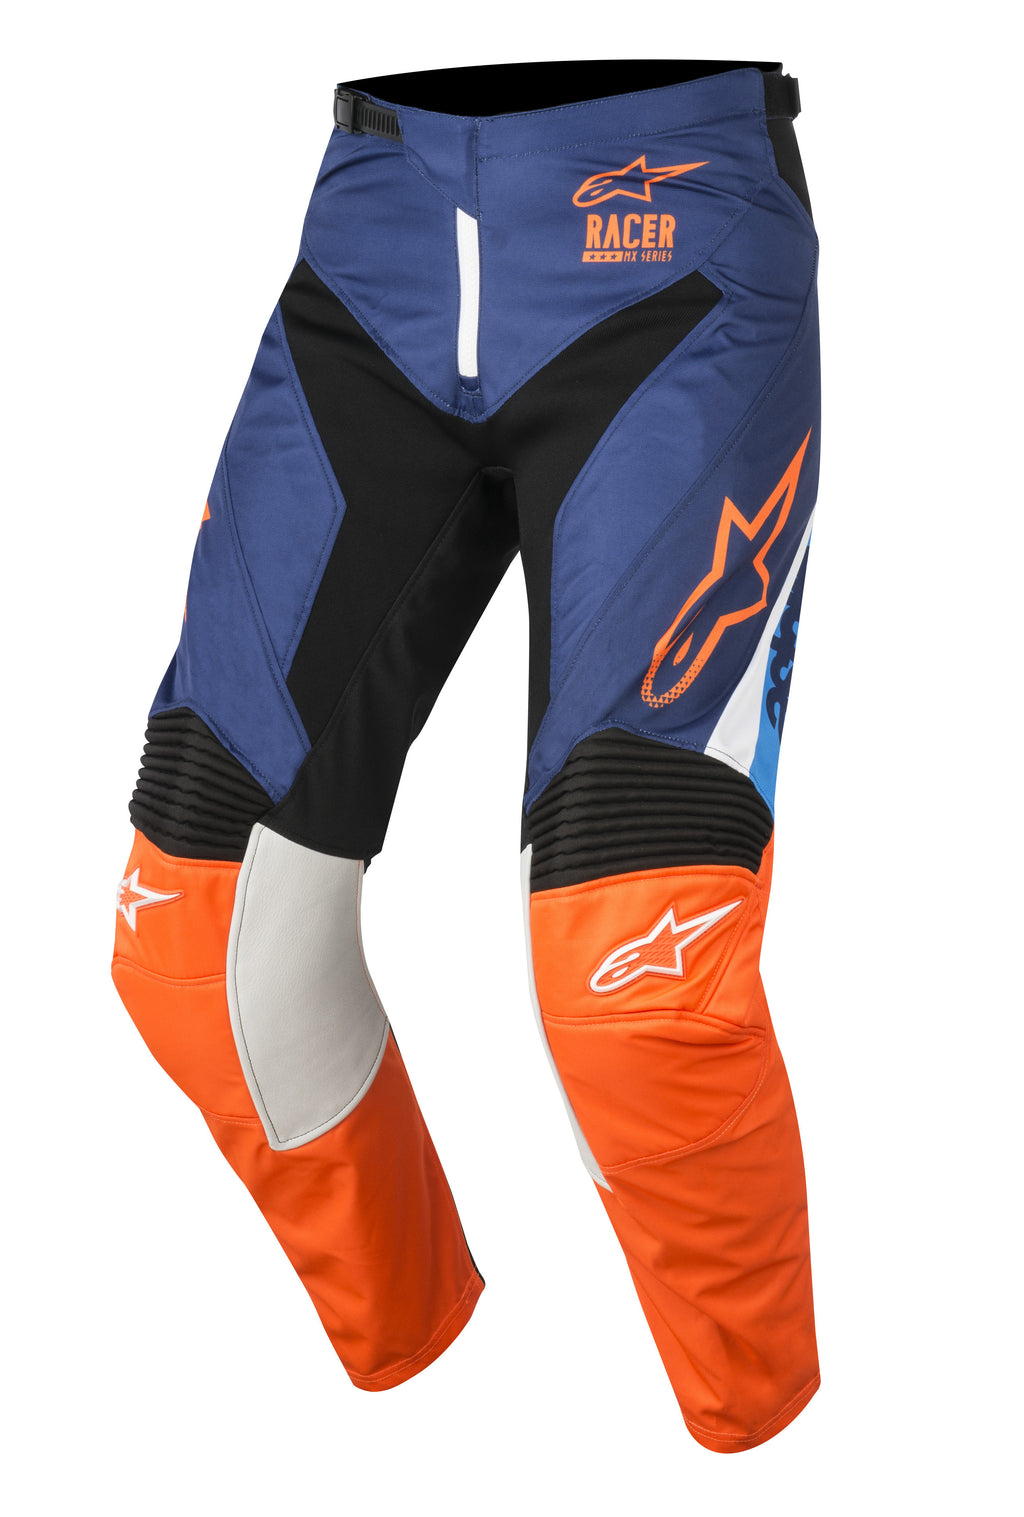 Kit Combo Alpinestars Racer Supermatic - 2018- Blue Orange Aqua 30in Medium